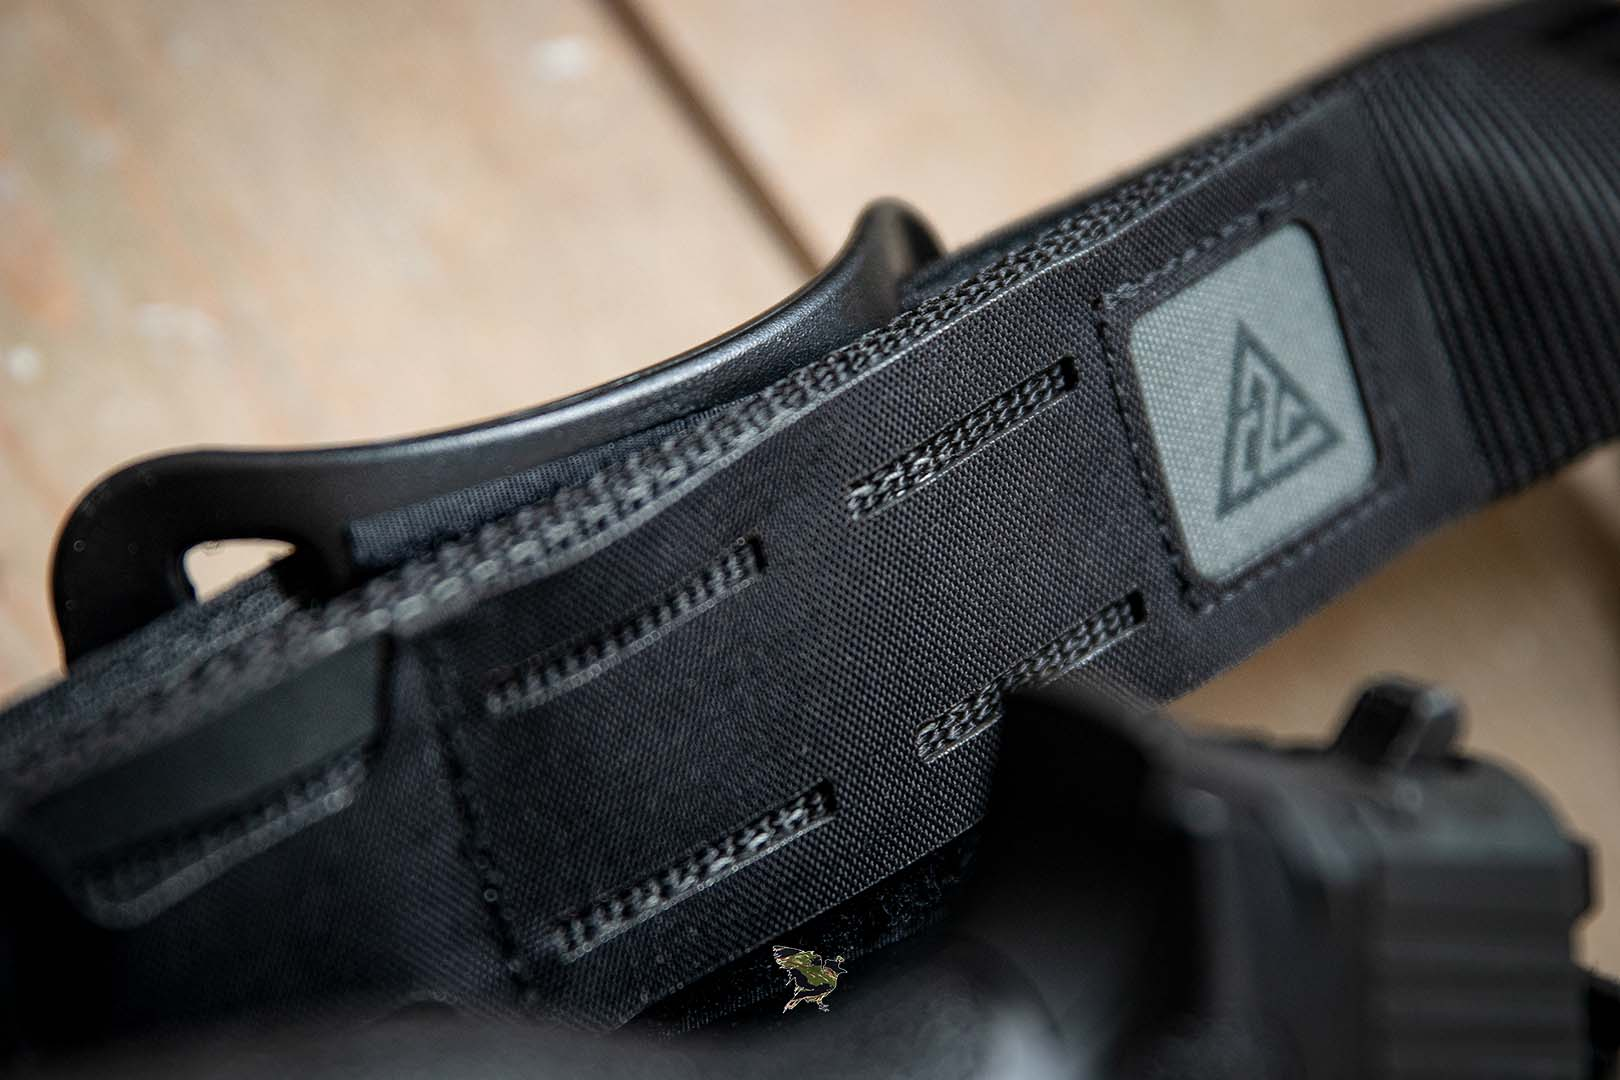 C2R Fast Shooter's Belt R review by the Geardo Crow